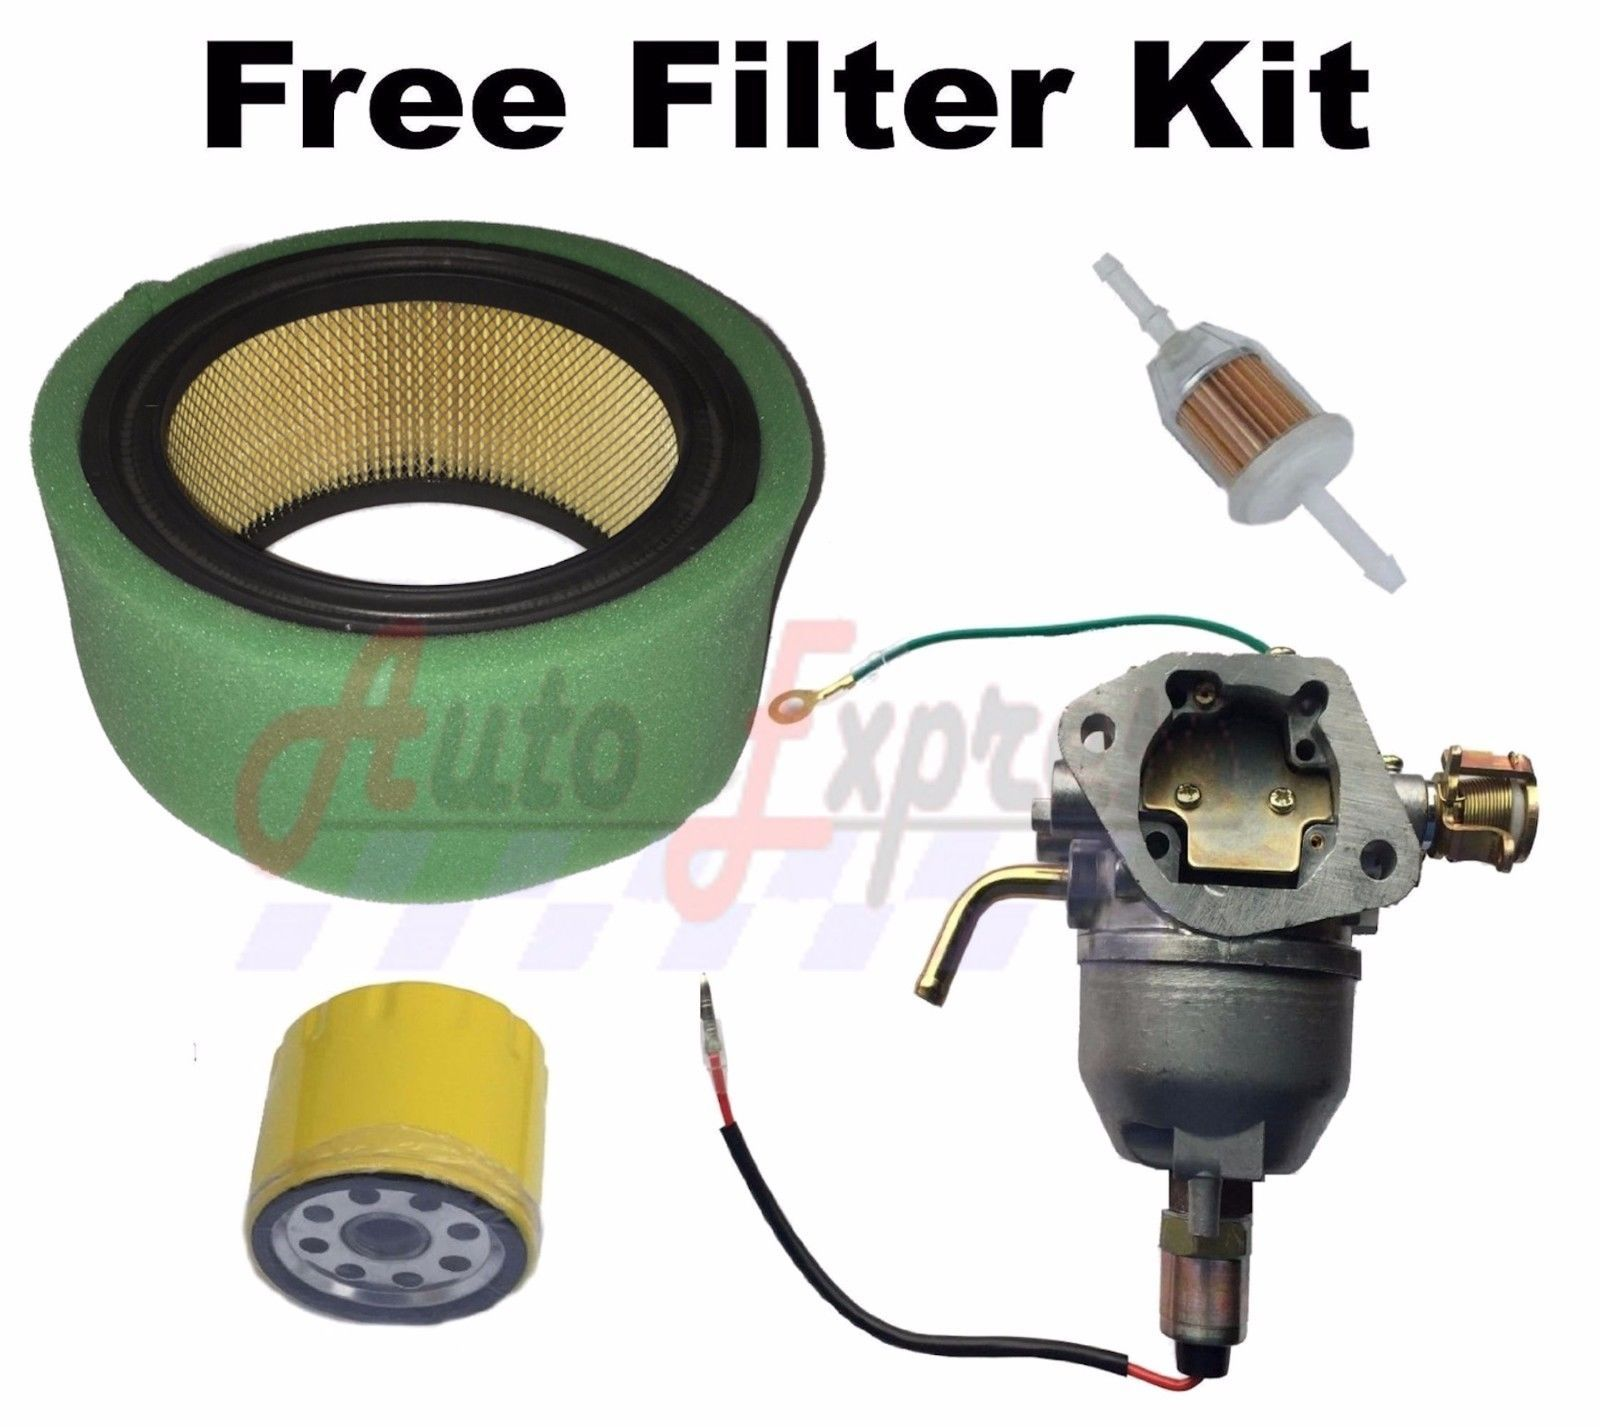 Carburetor Fits John Deere 60 Skid Steer Nikki Carb Tune Up Kit image 1